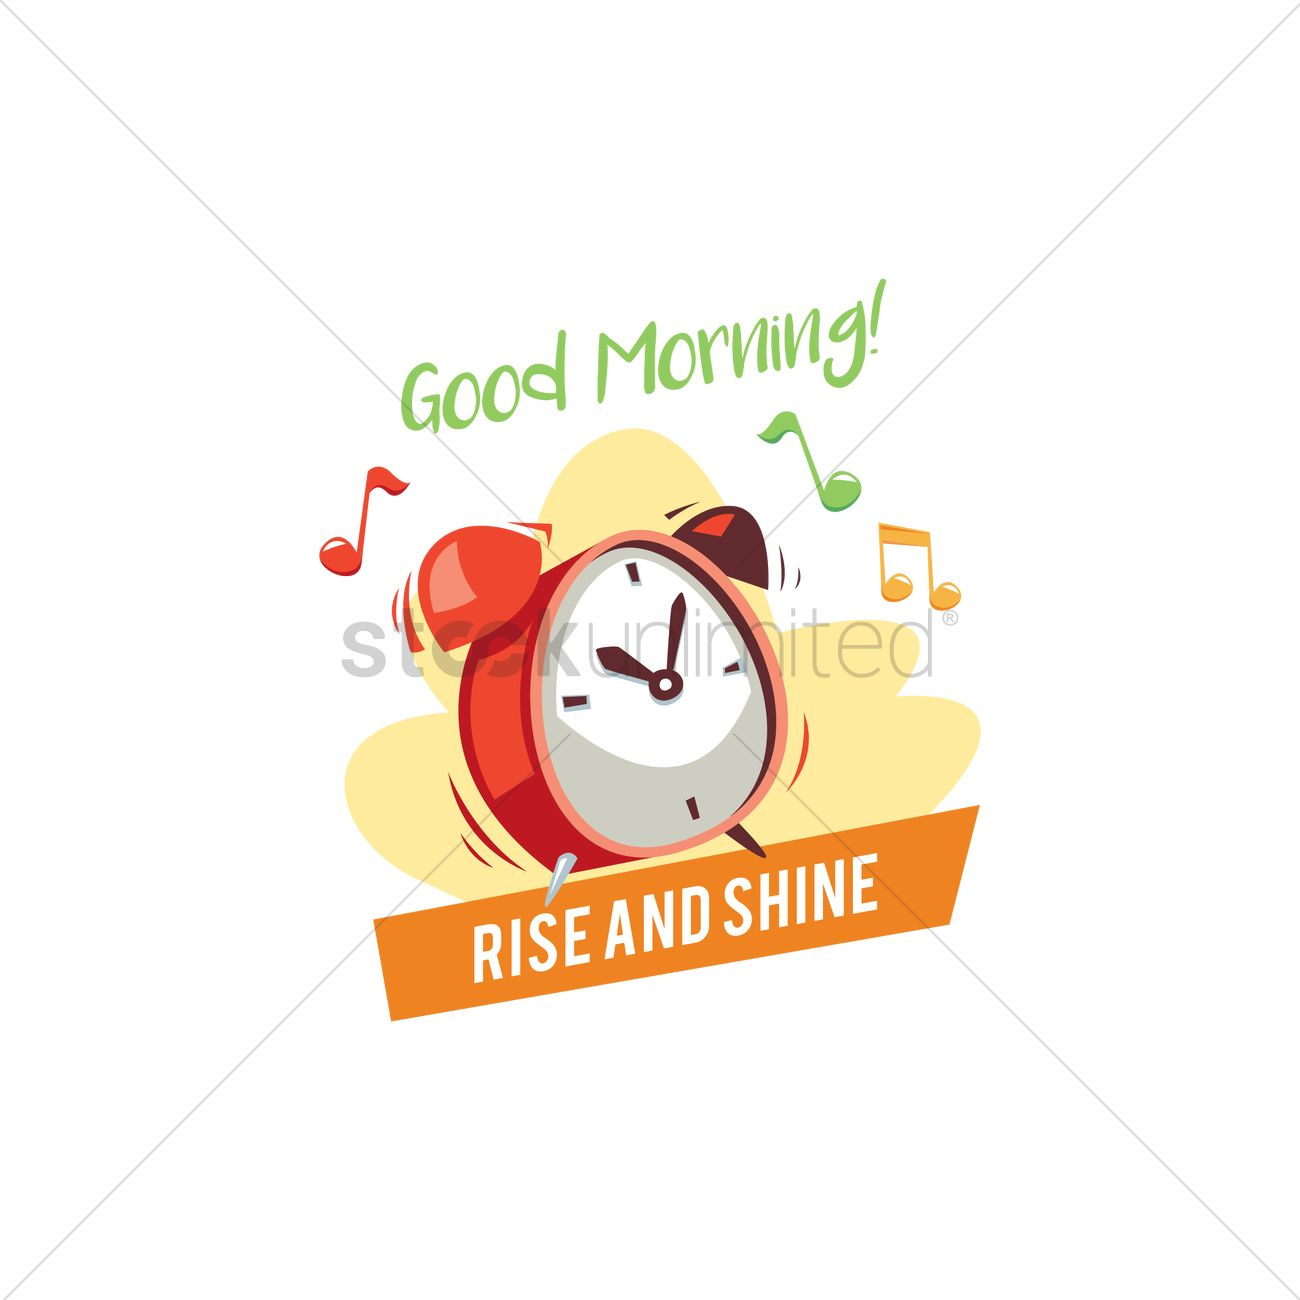 Alarm clock with good morning text Vector Image.